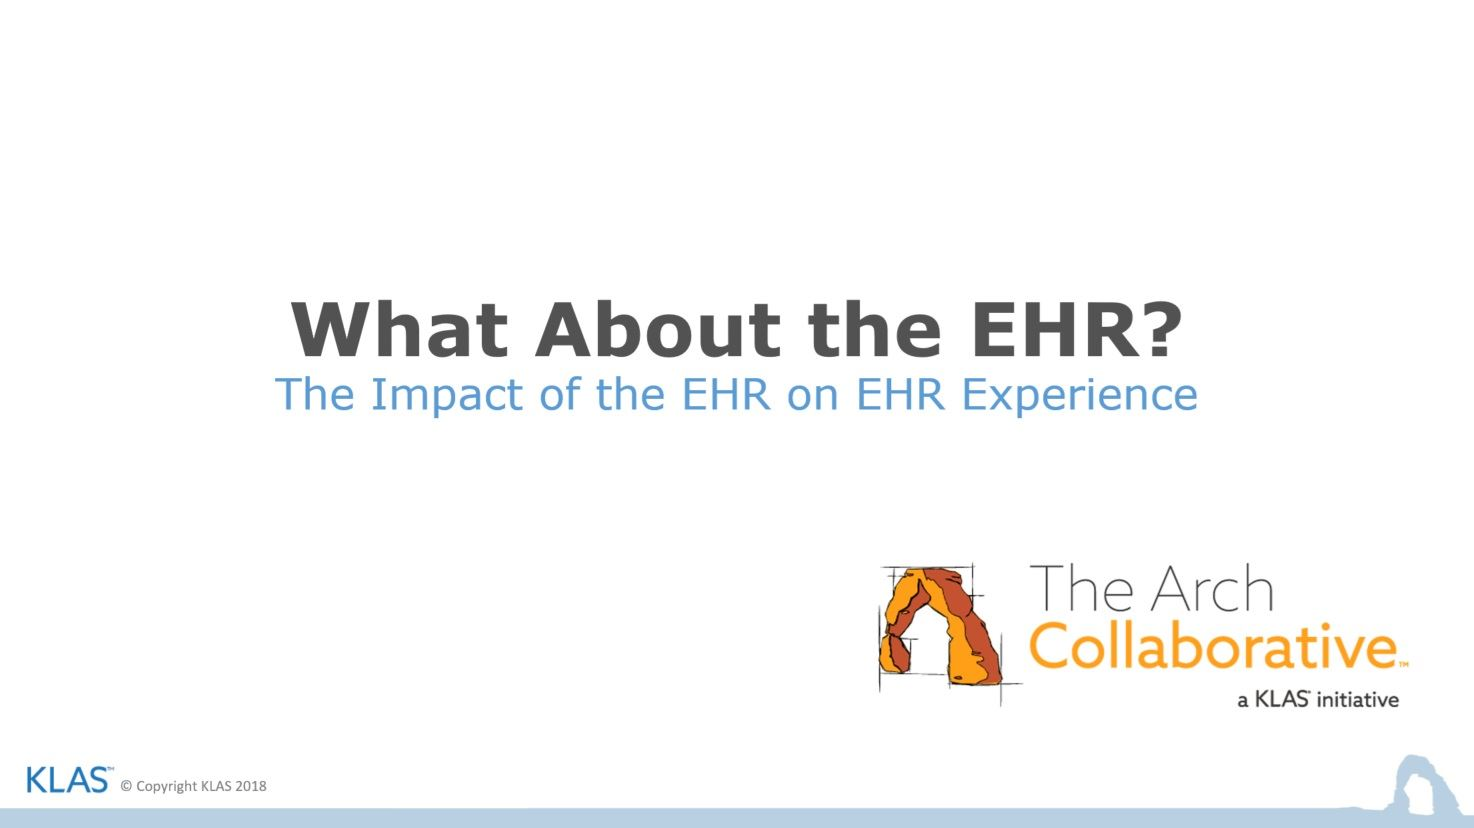 The Impact of the EHR